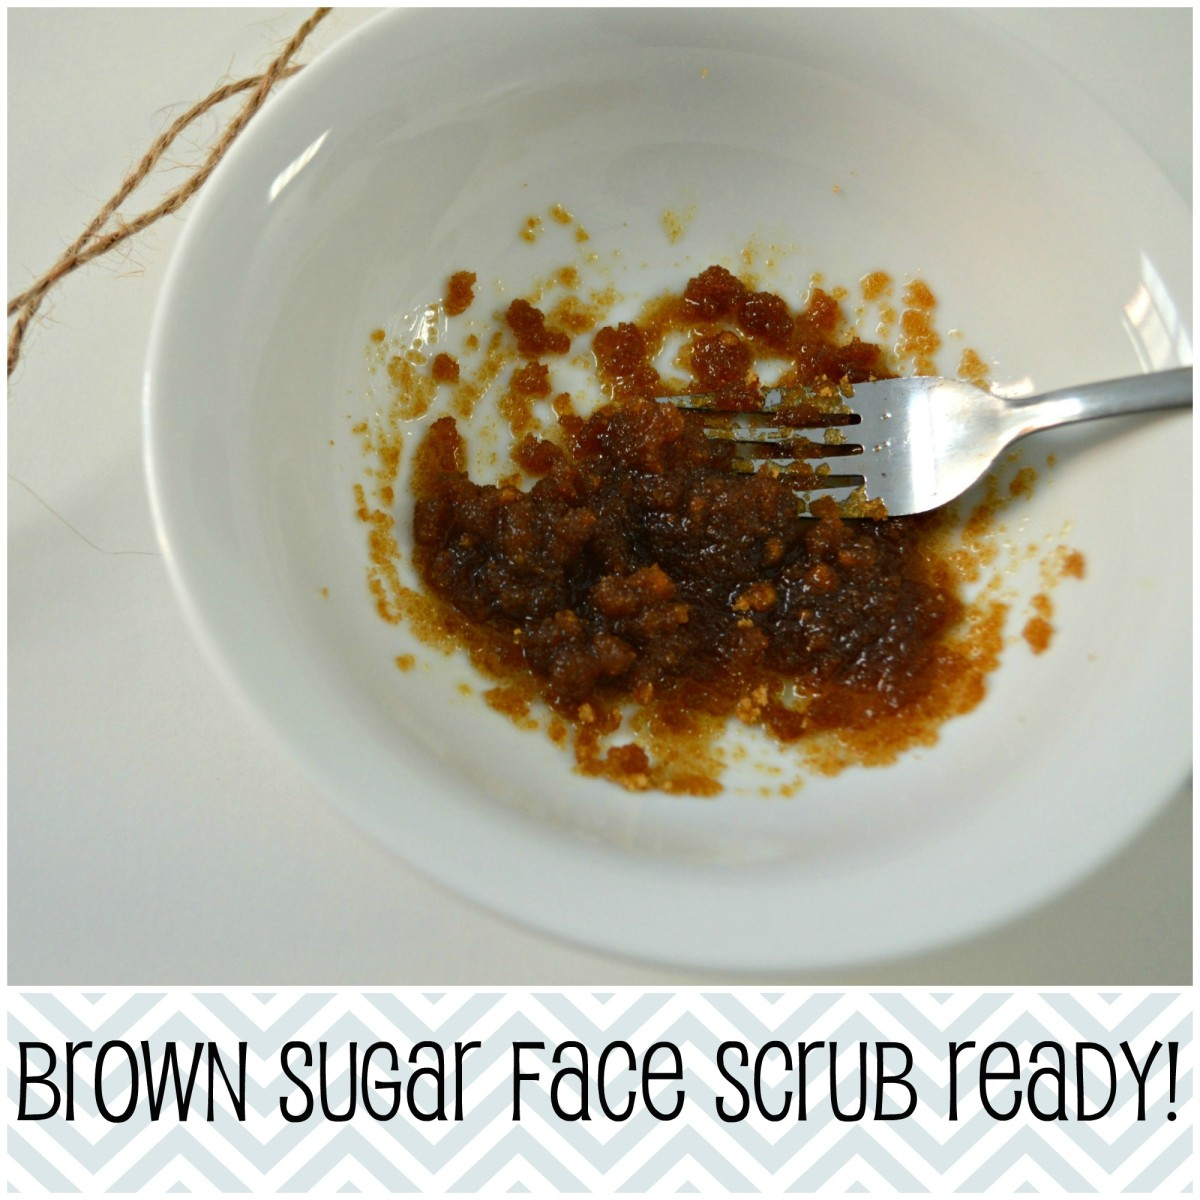 Now your brown sugar scrub is ready! Apply with clean fingers on a dry washed face.